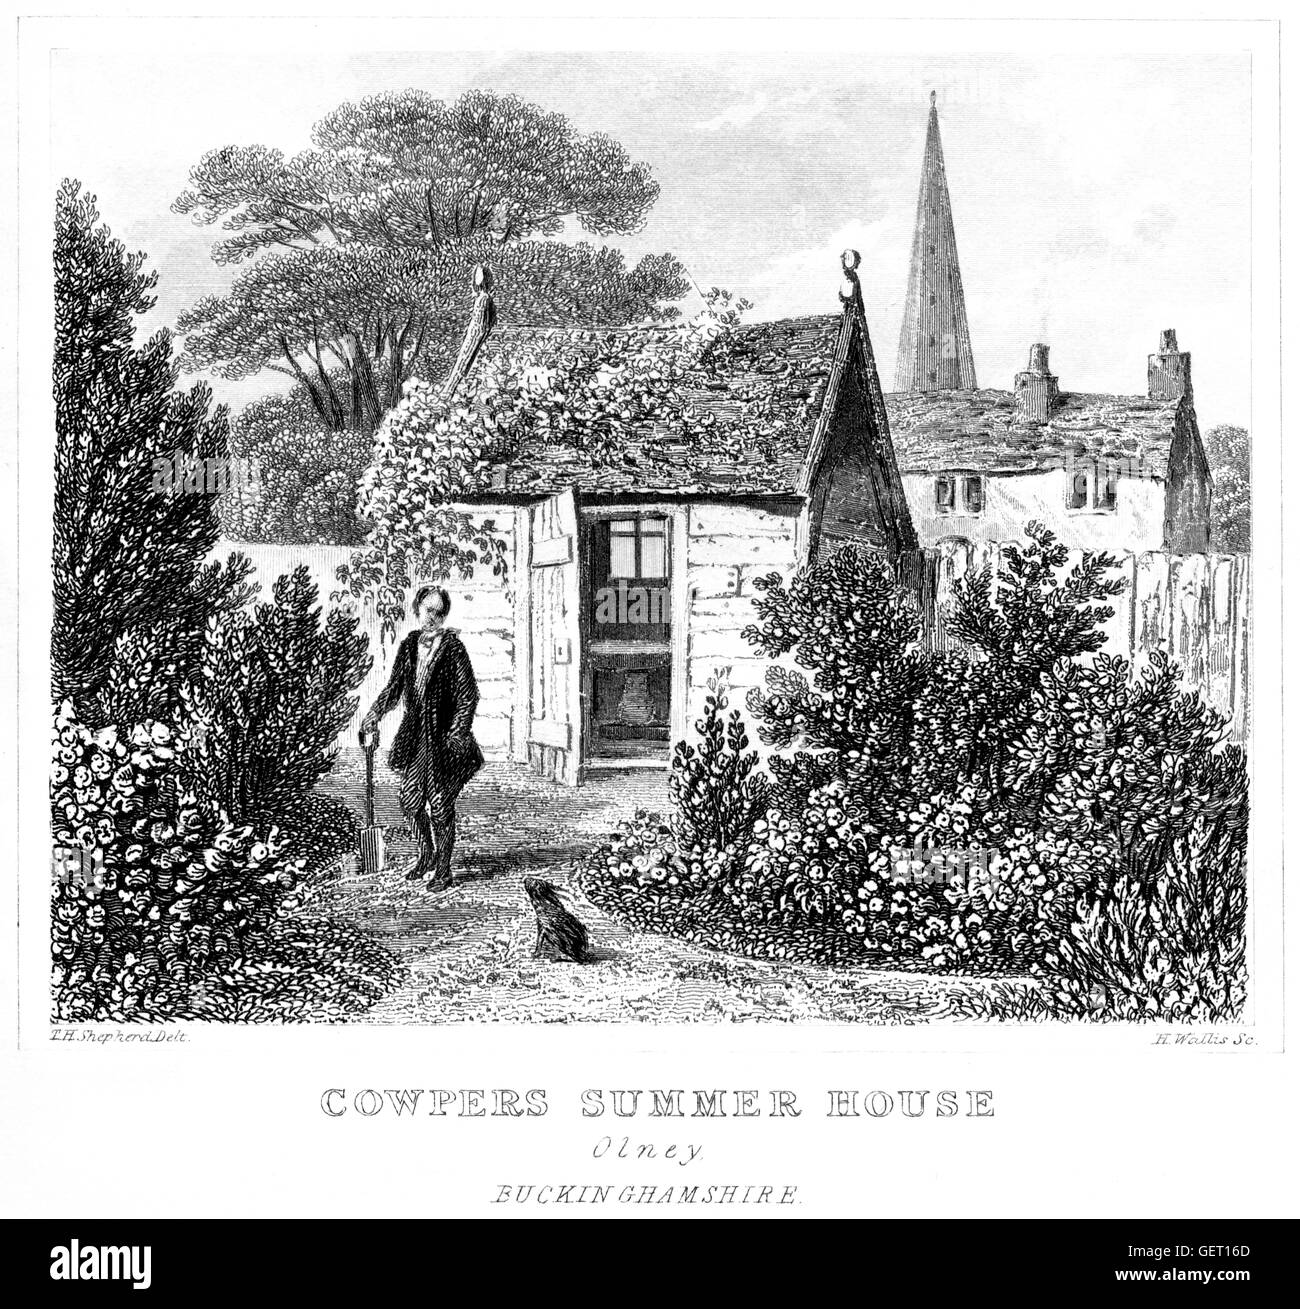 An engraving of Cowpers Summer House, Olney, Buckinghamshire scanned at high resolution from a book printed in 1846. - Stock Image